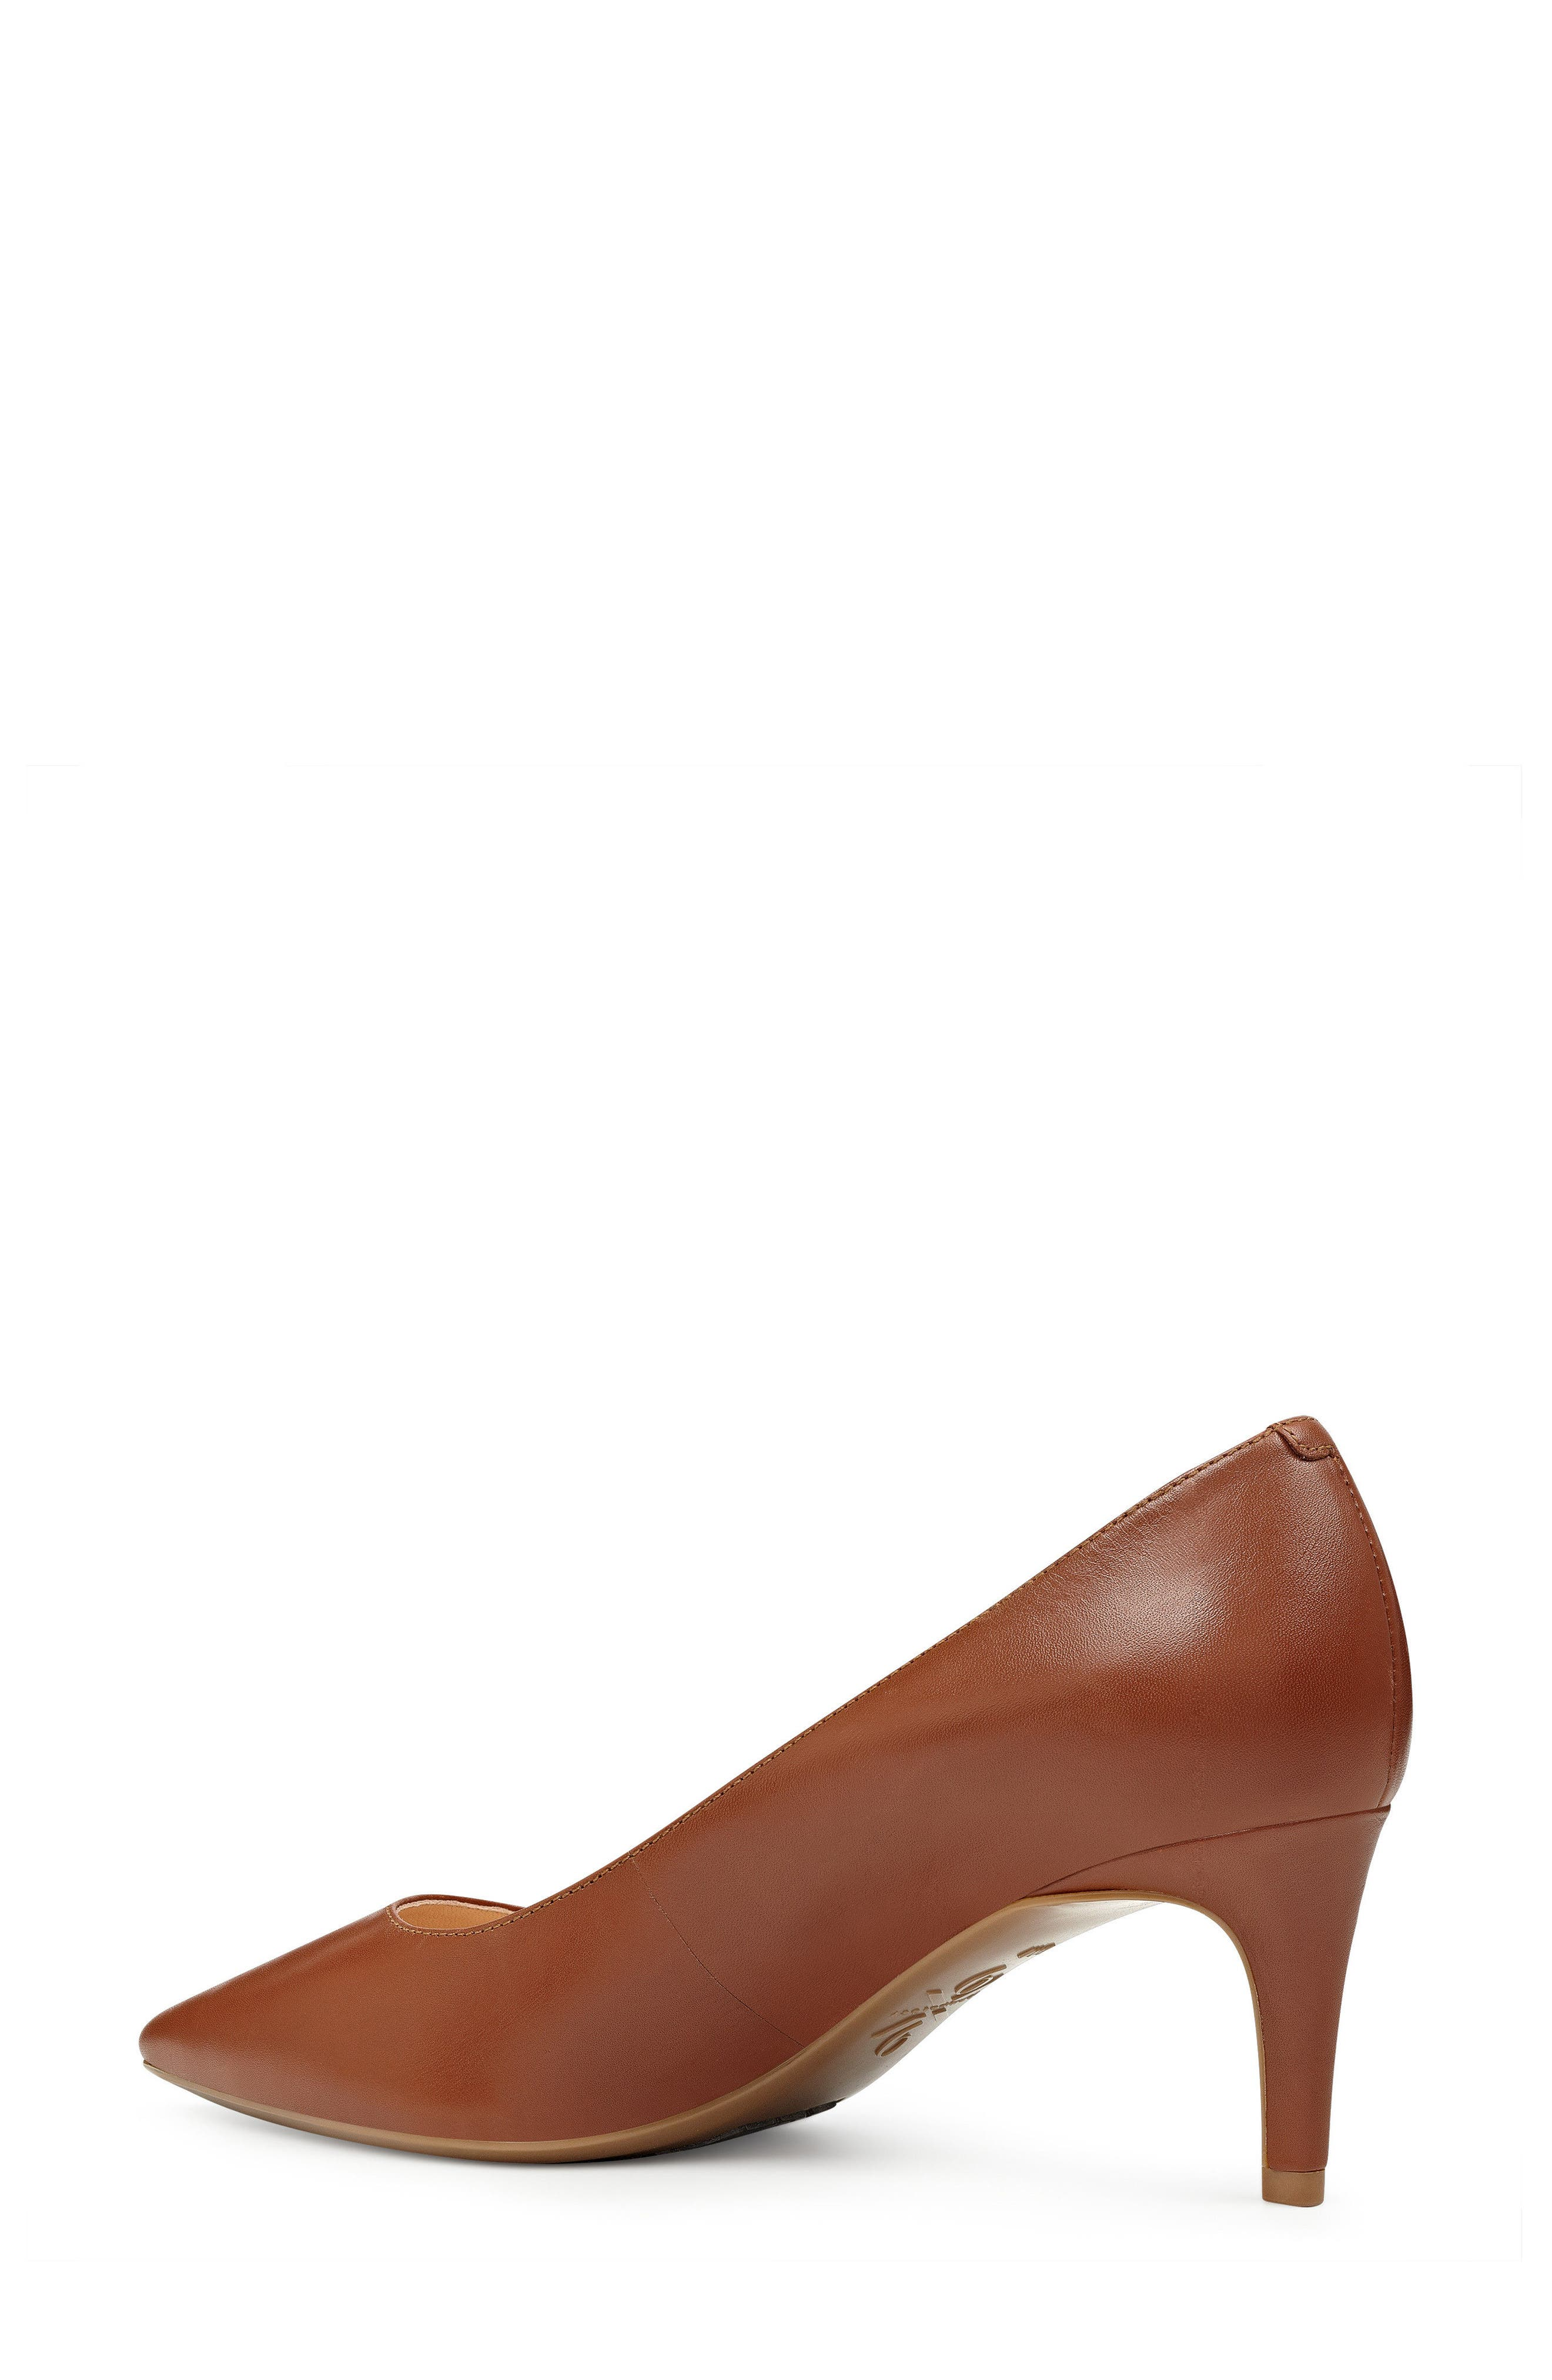 Soho Pointy Toe Pump,                             Alternate thumbnail 17, color,